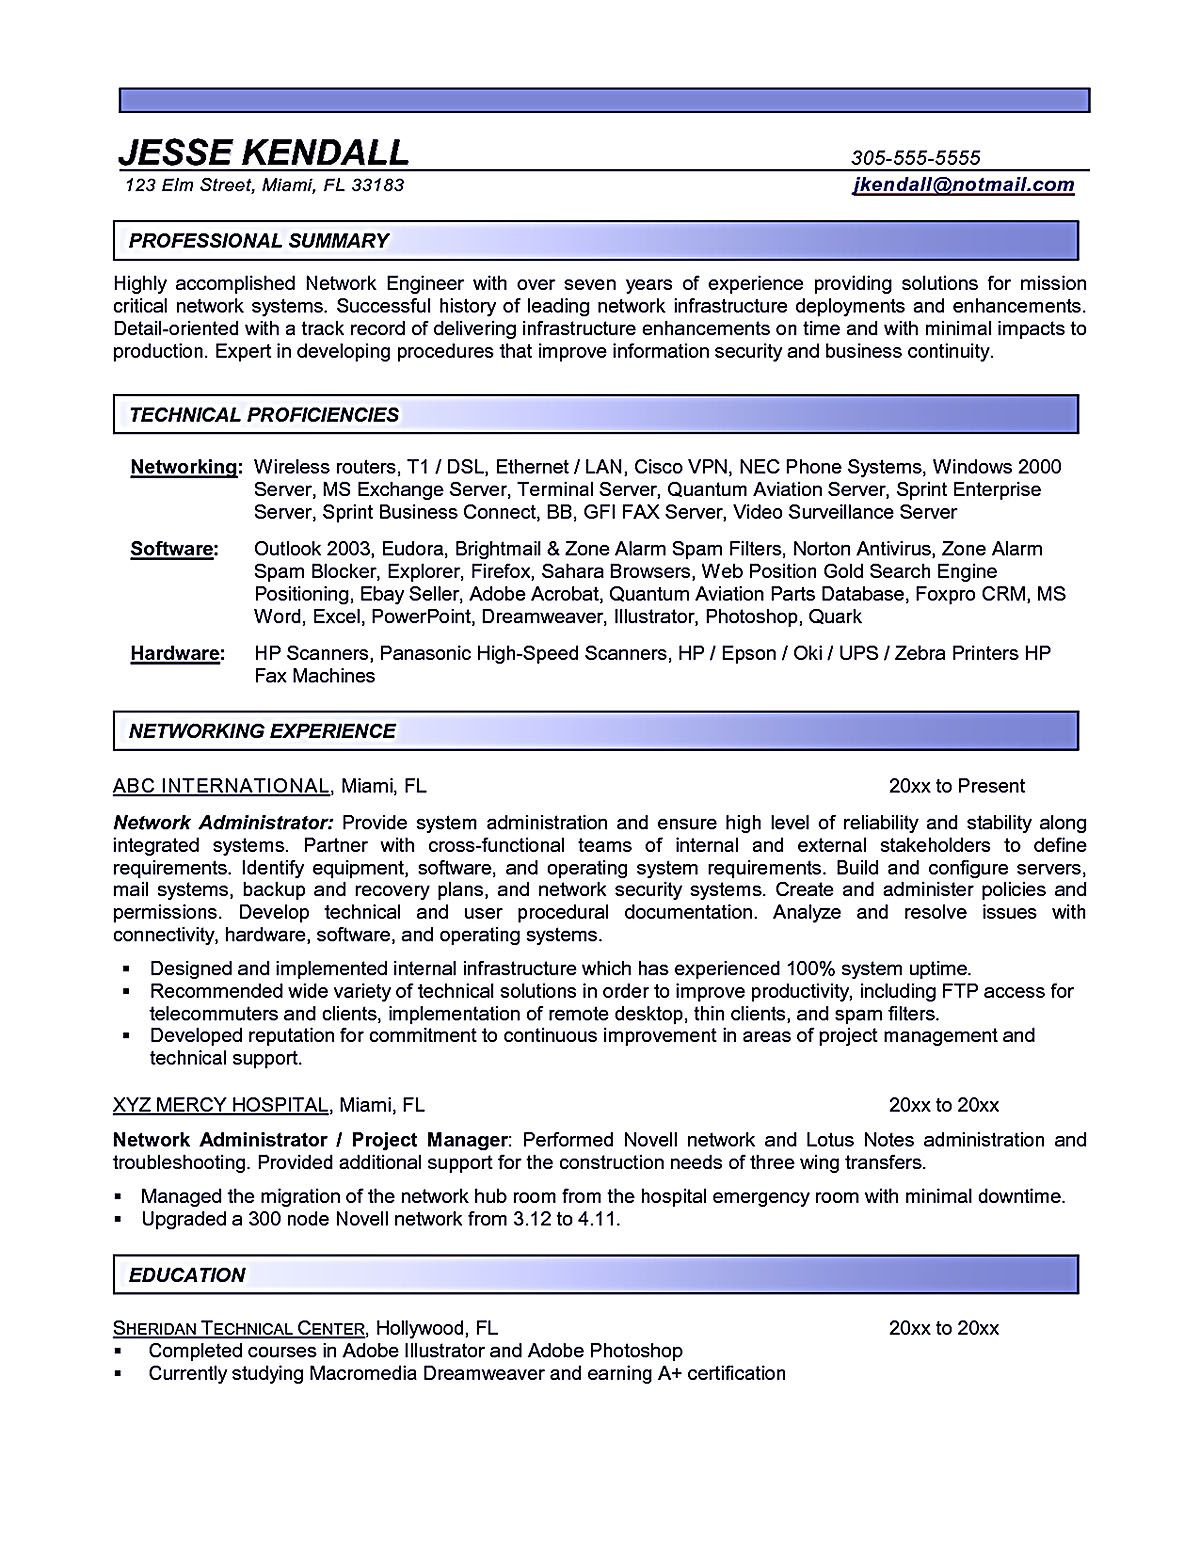 Account Receivable Resume Enchanting Account Receivable Resume Shows Both Technical And Interpersonal .